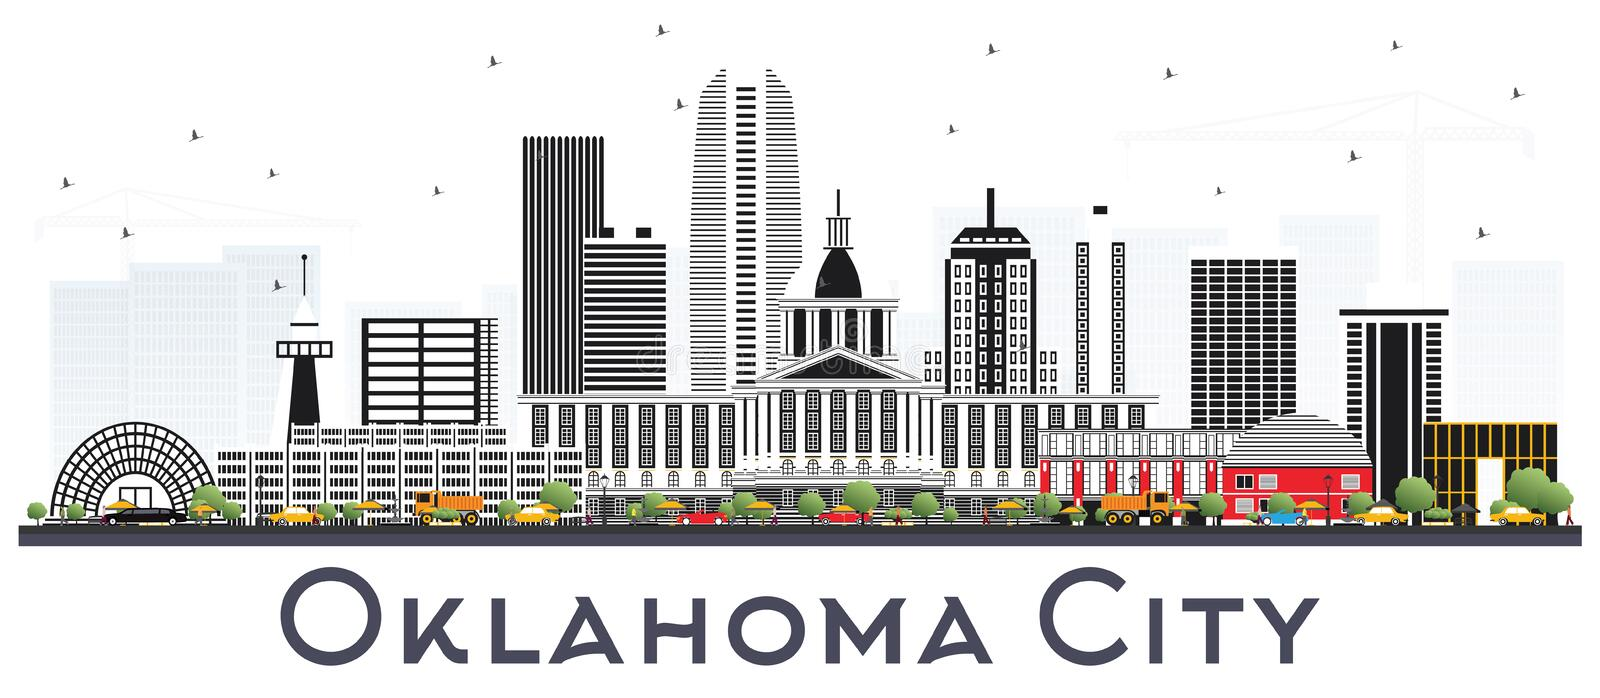 Oklahoma City Skyline with Gray Buildings Isolated on White. Vector Illustration. Business Travel and Tourism Concept with Modern Architecture. Oklahoma City vector illustration